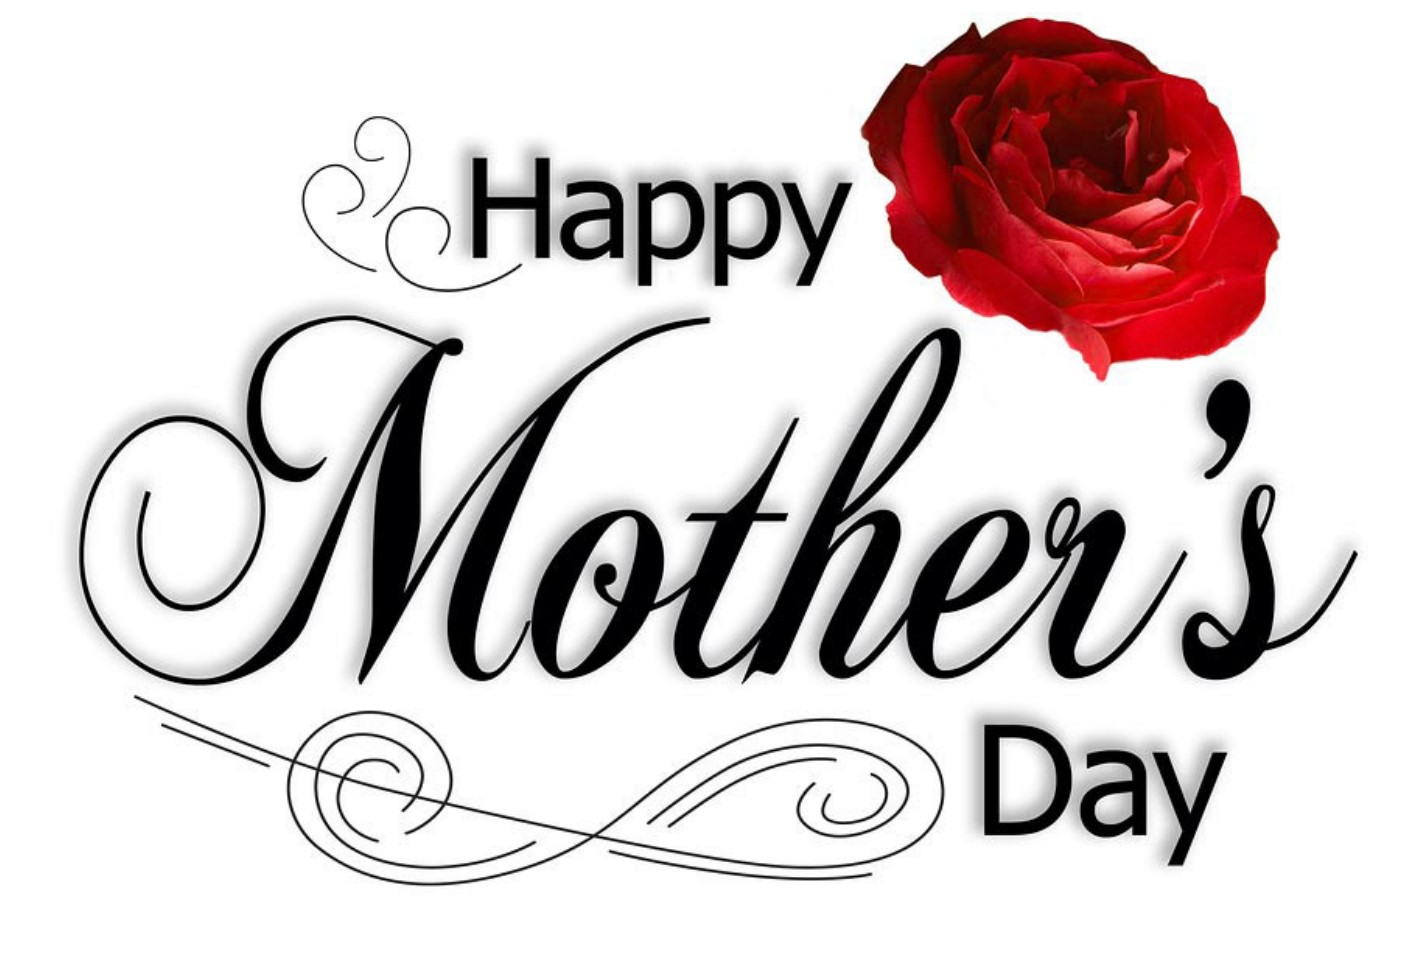 Happy Mother's Day Images free download